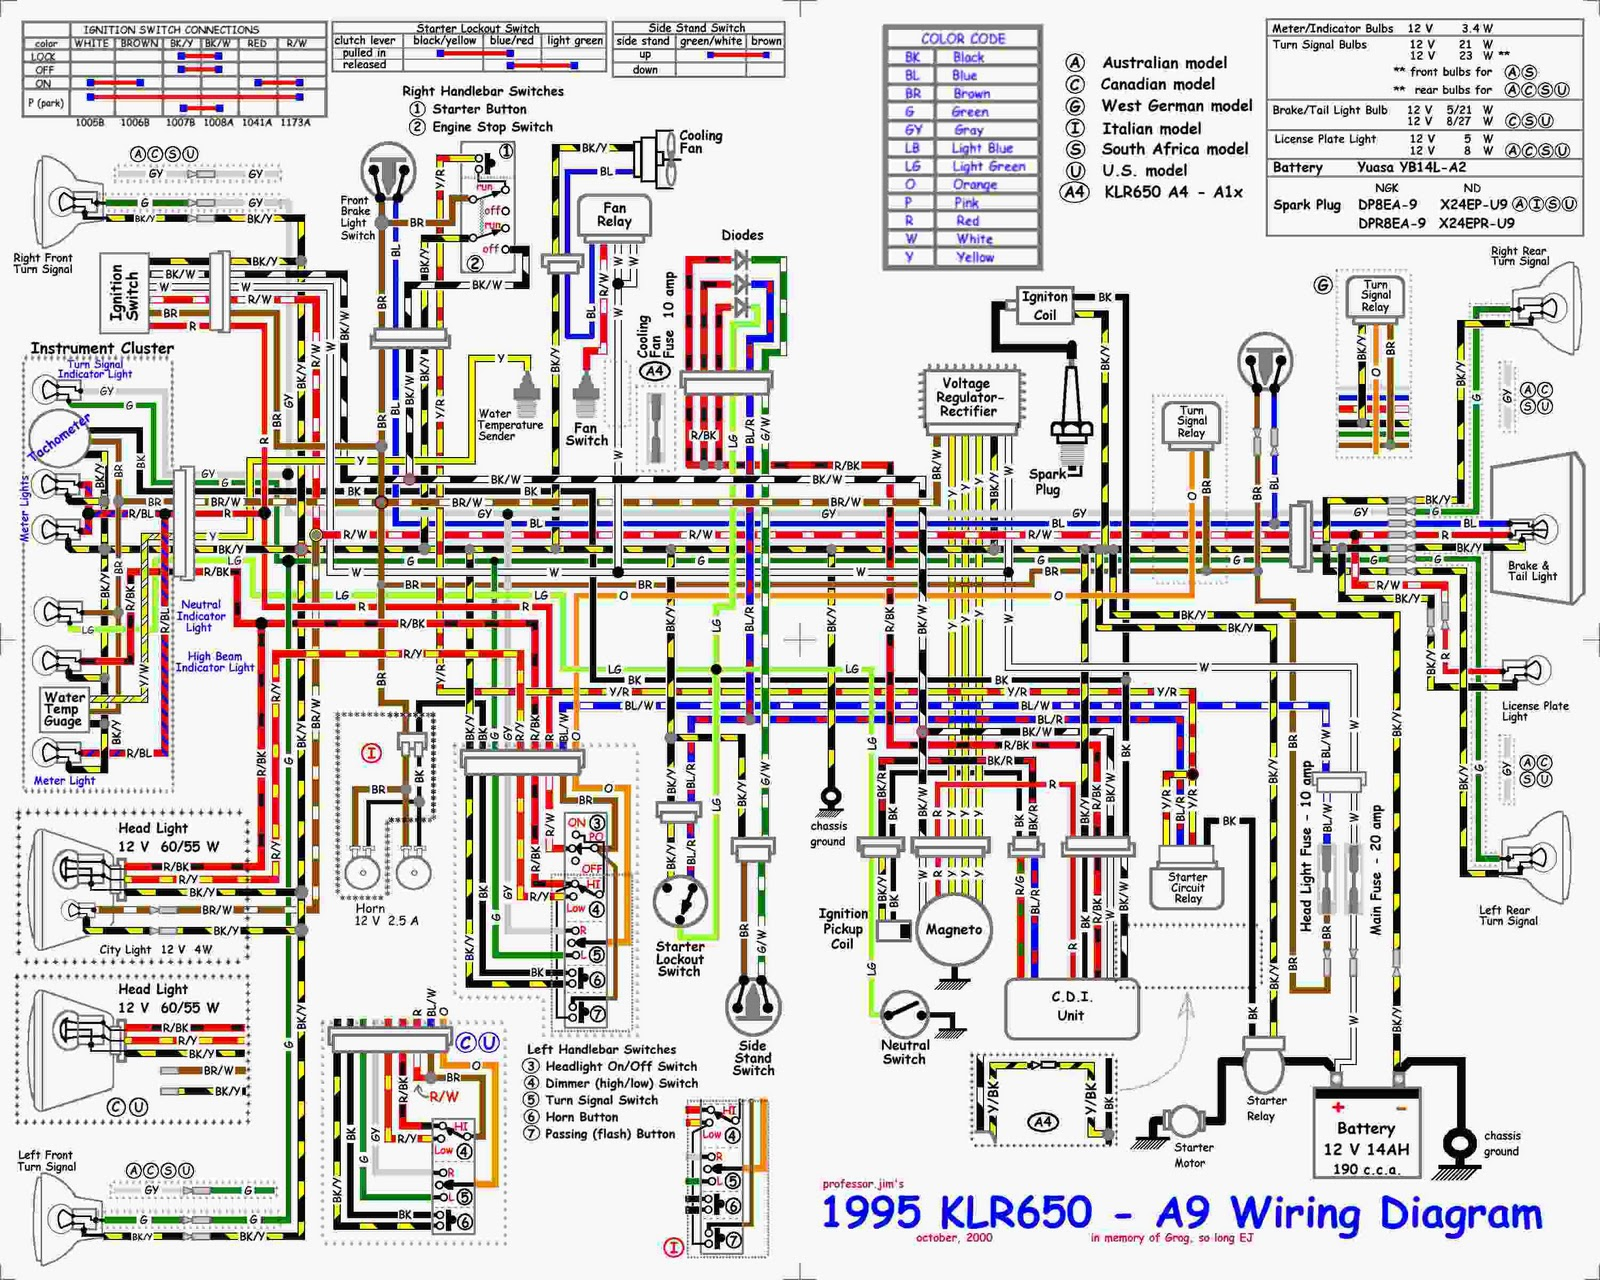 medium resolution of daihatsu charade wiring diagram wiring diagram centre daihatsu charade wiring diagram